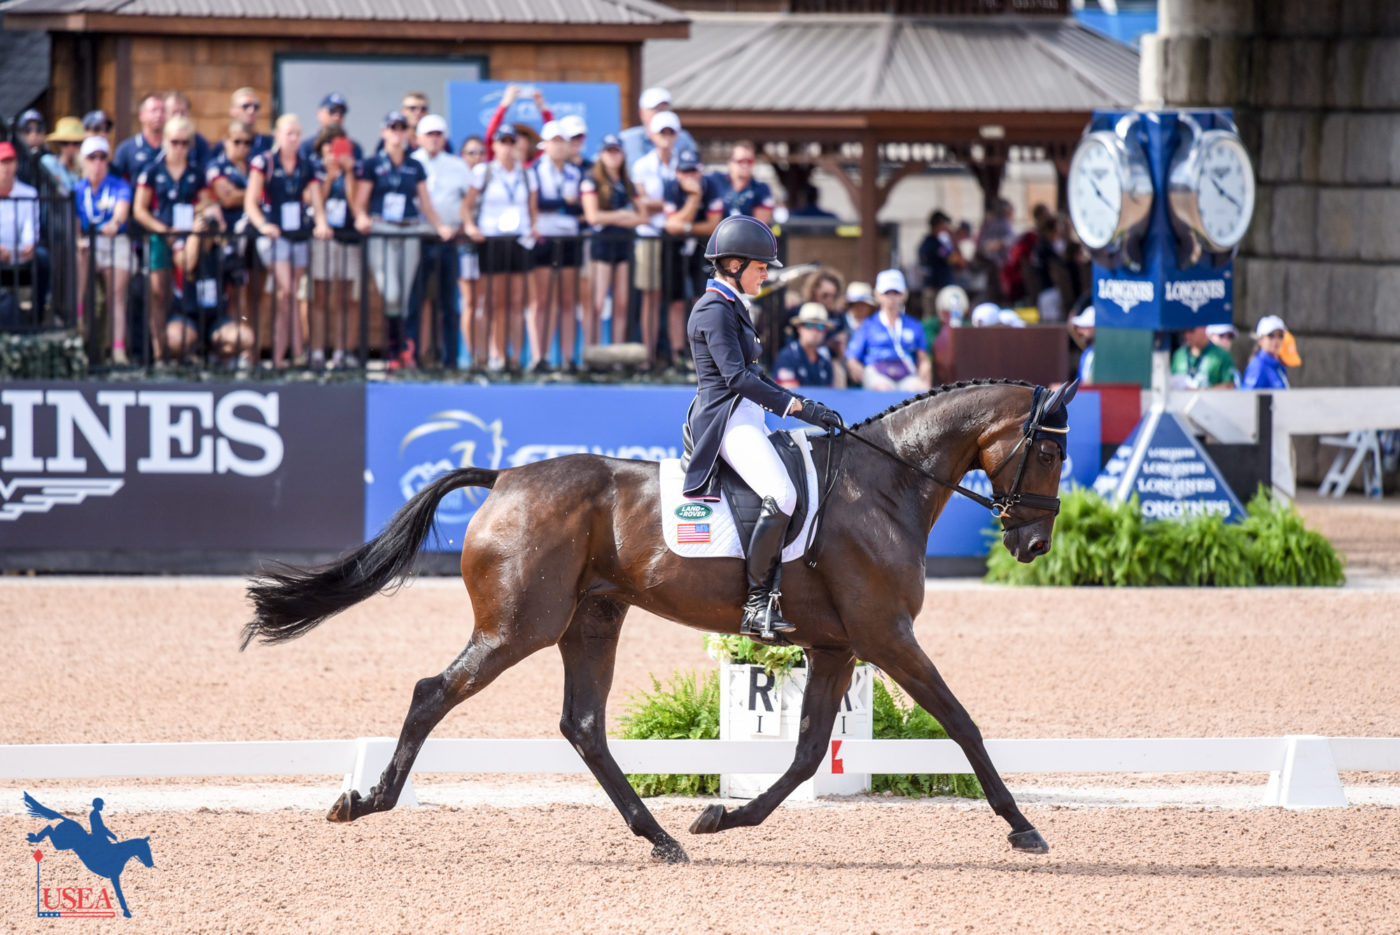 17th - Lynn Symansky and Donner (USA)